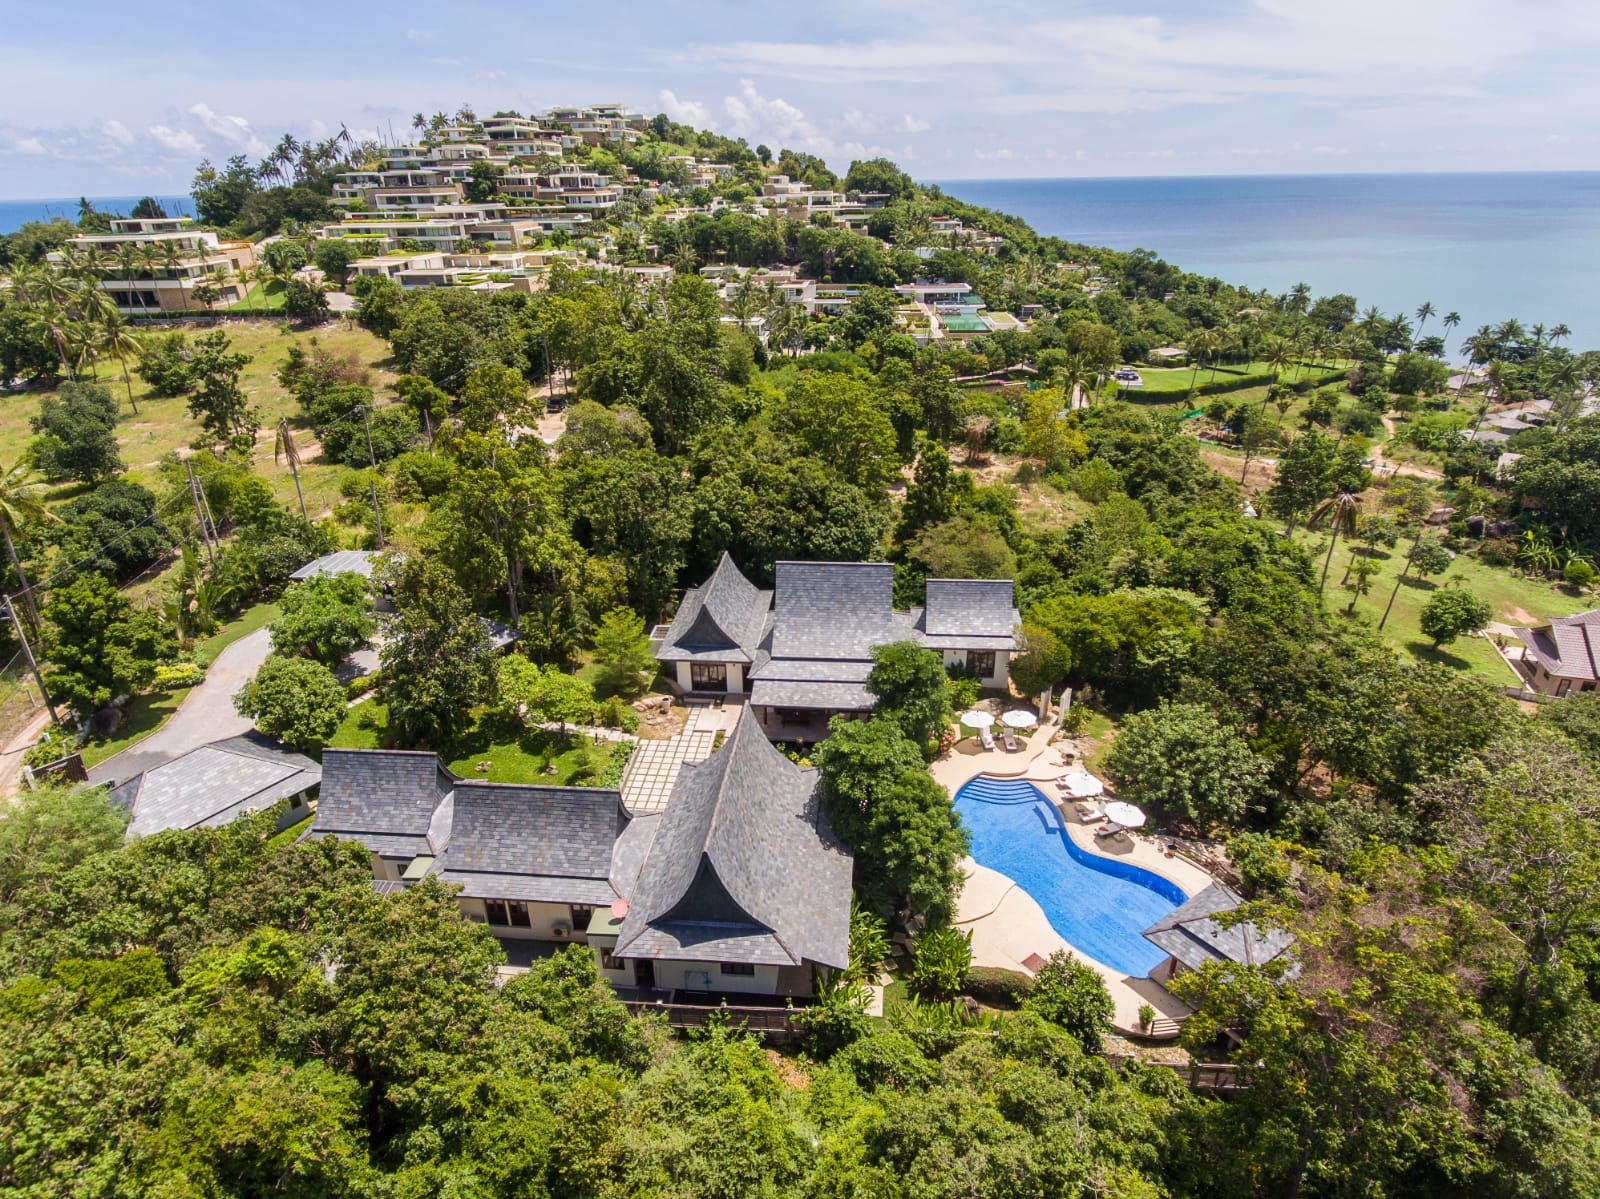 Luxury-Villa-For-Sale-Koh-Samui-Thailand